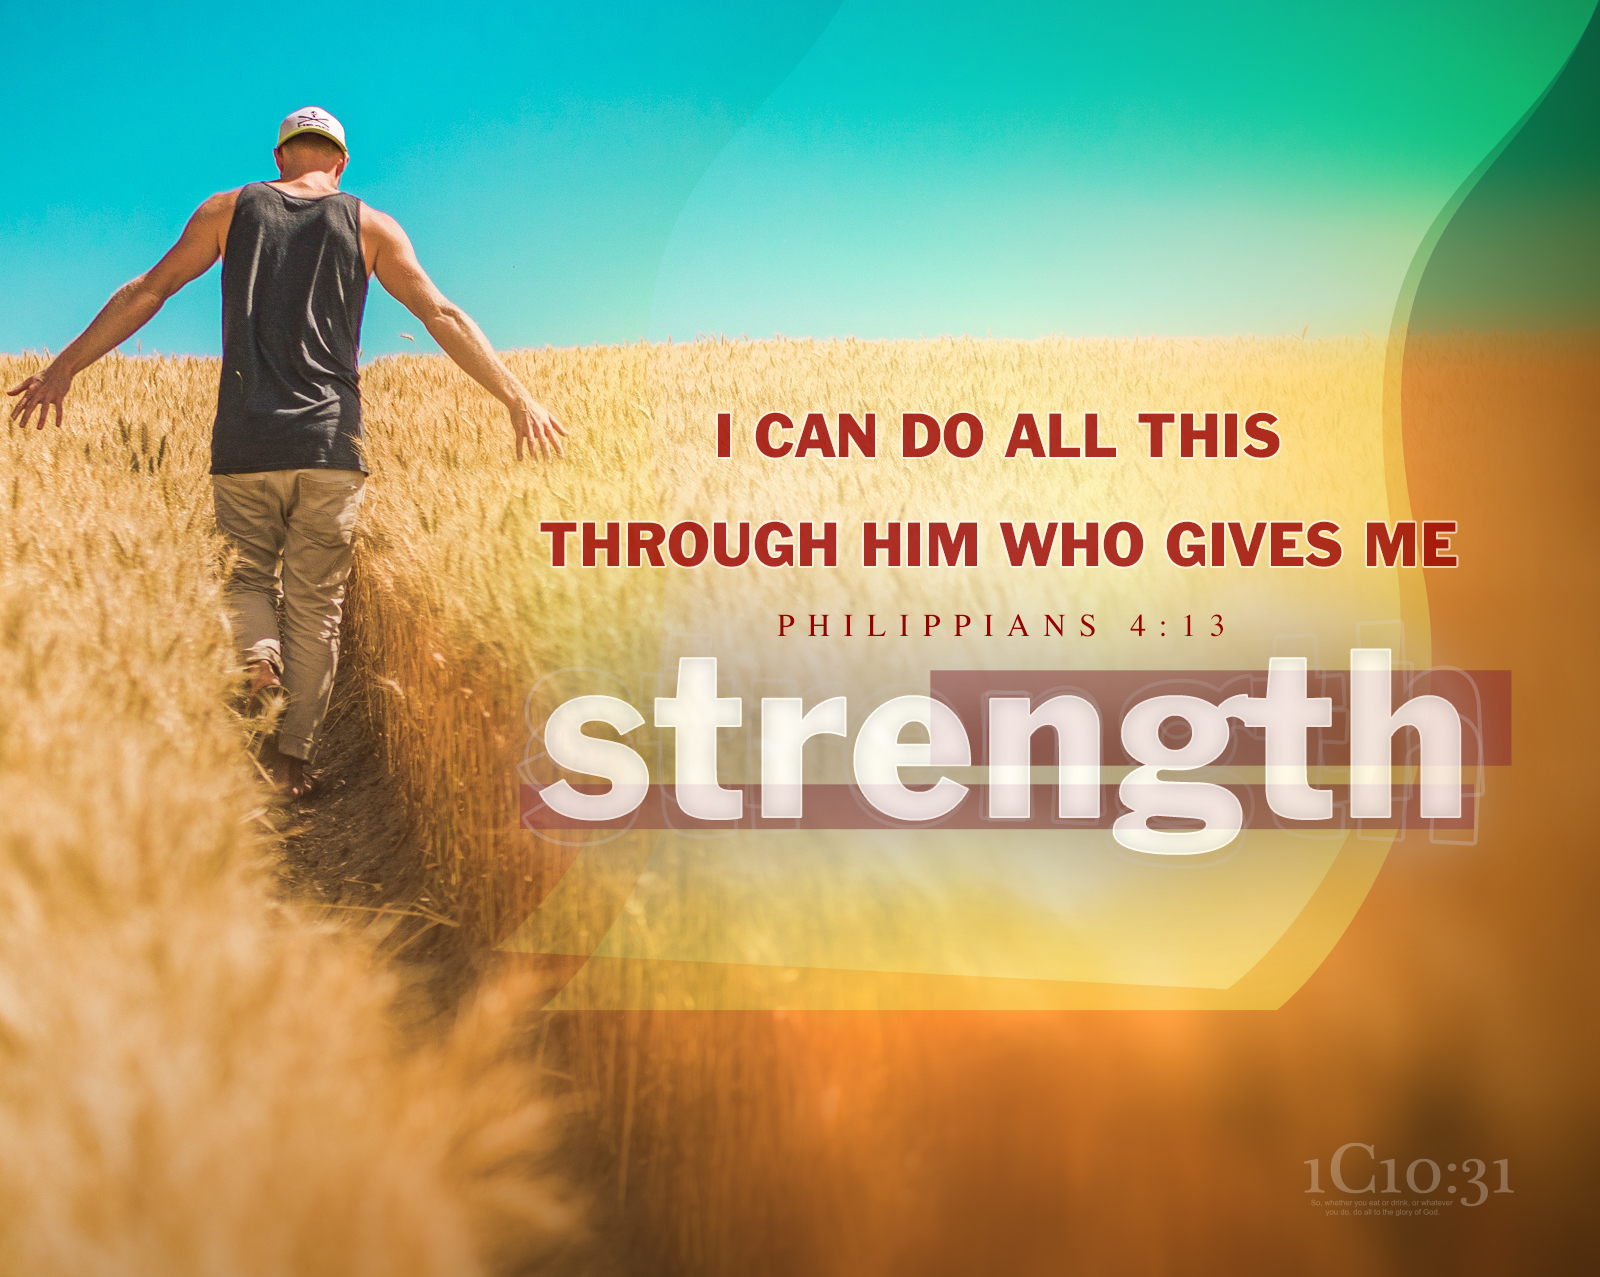 Philippians 4:13 I can do all this through him who gives me strength.